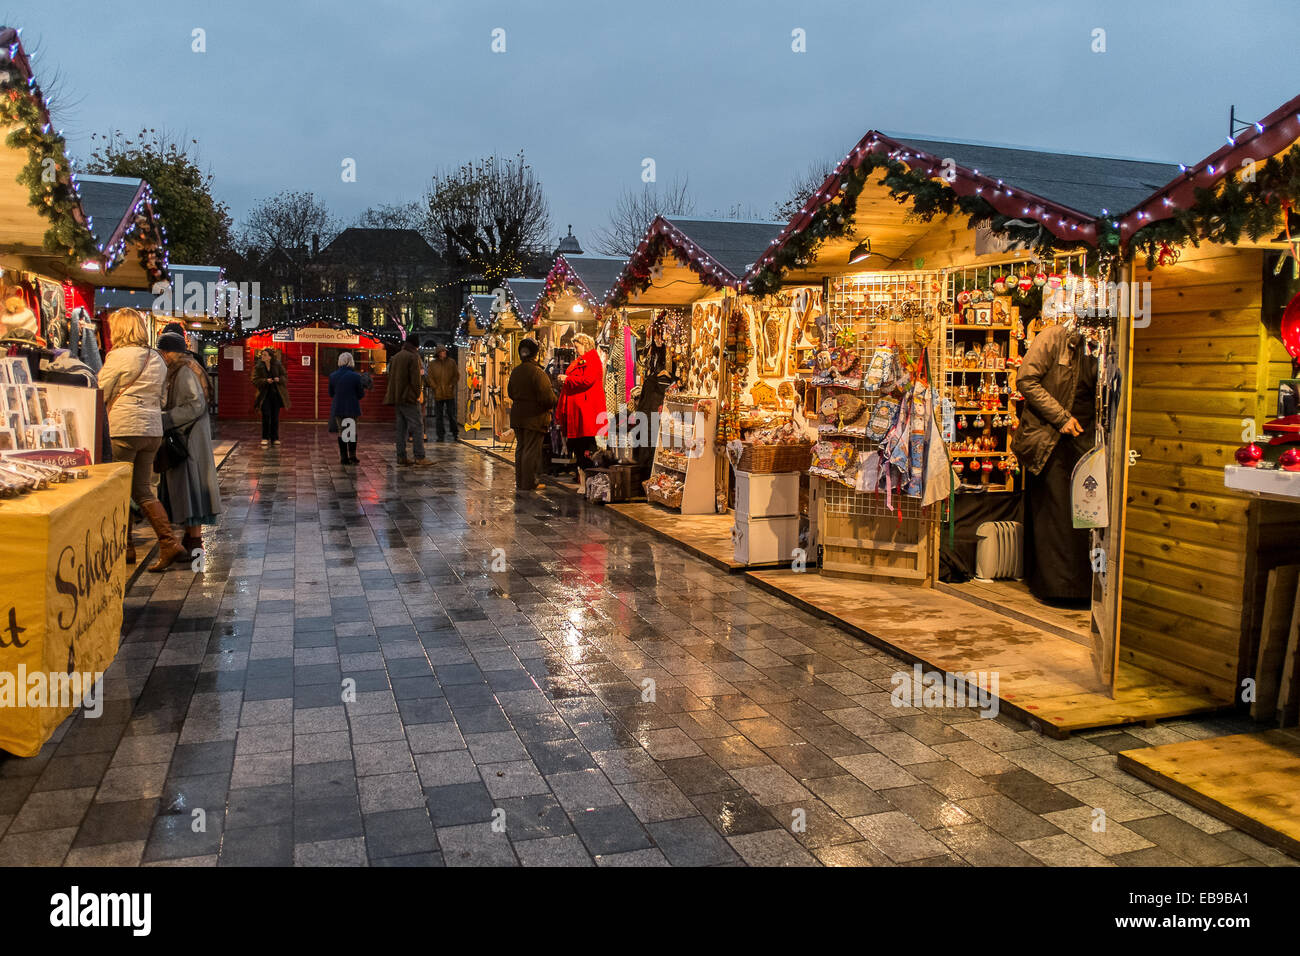 salisbury-27th-november-2014-salisbury-christmas-market-openning-night-EB9BA1.jpg